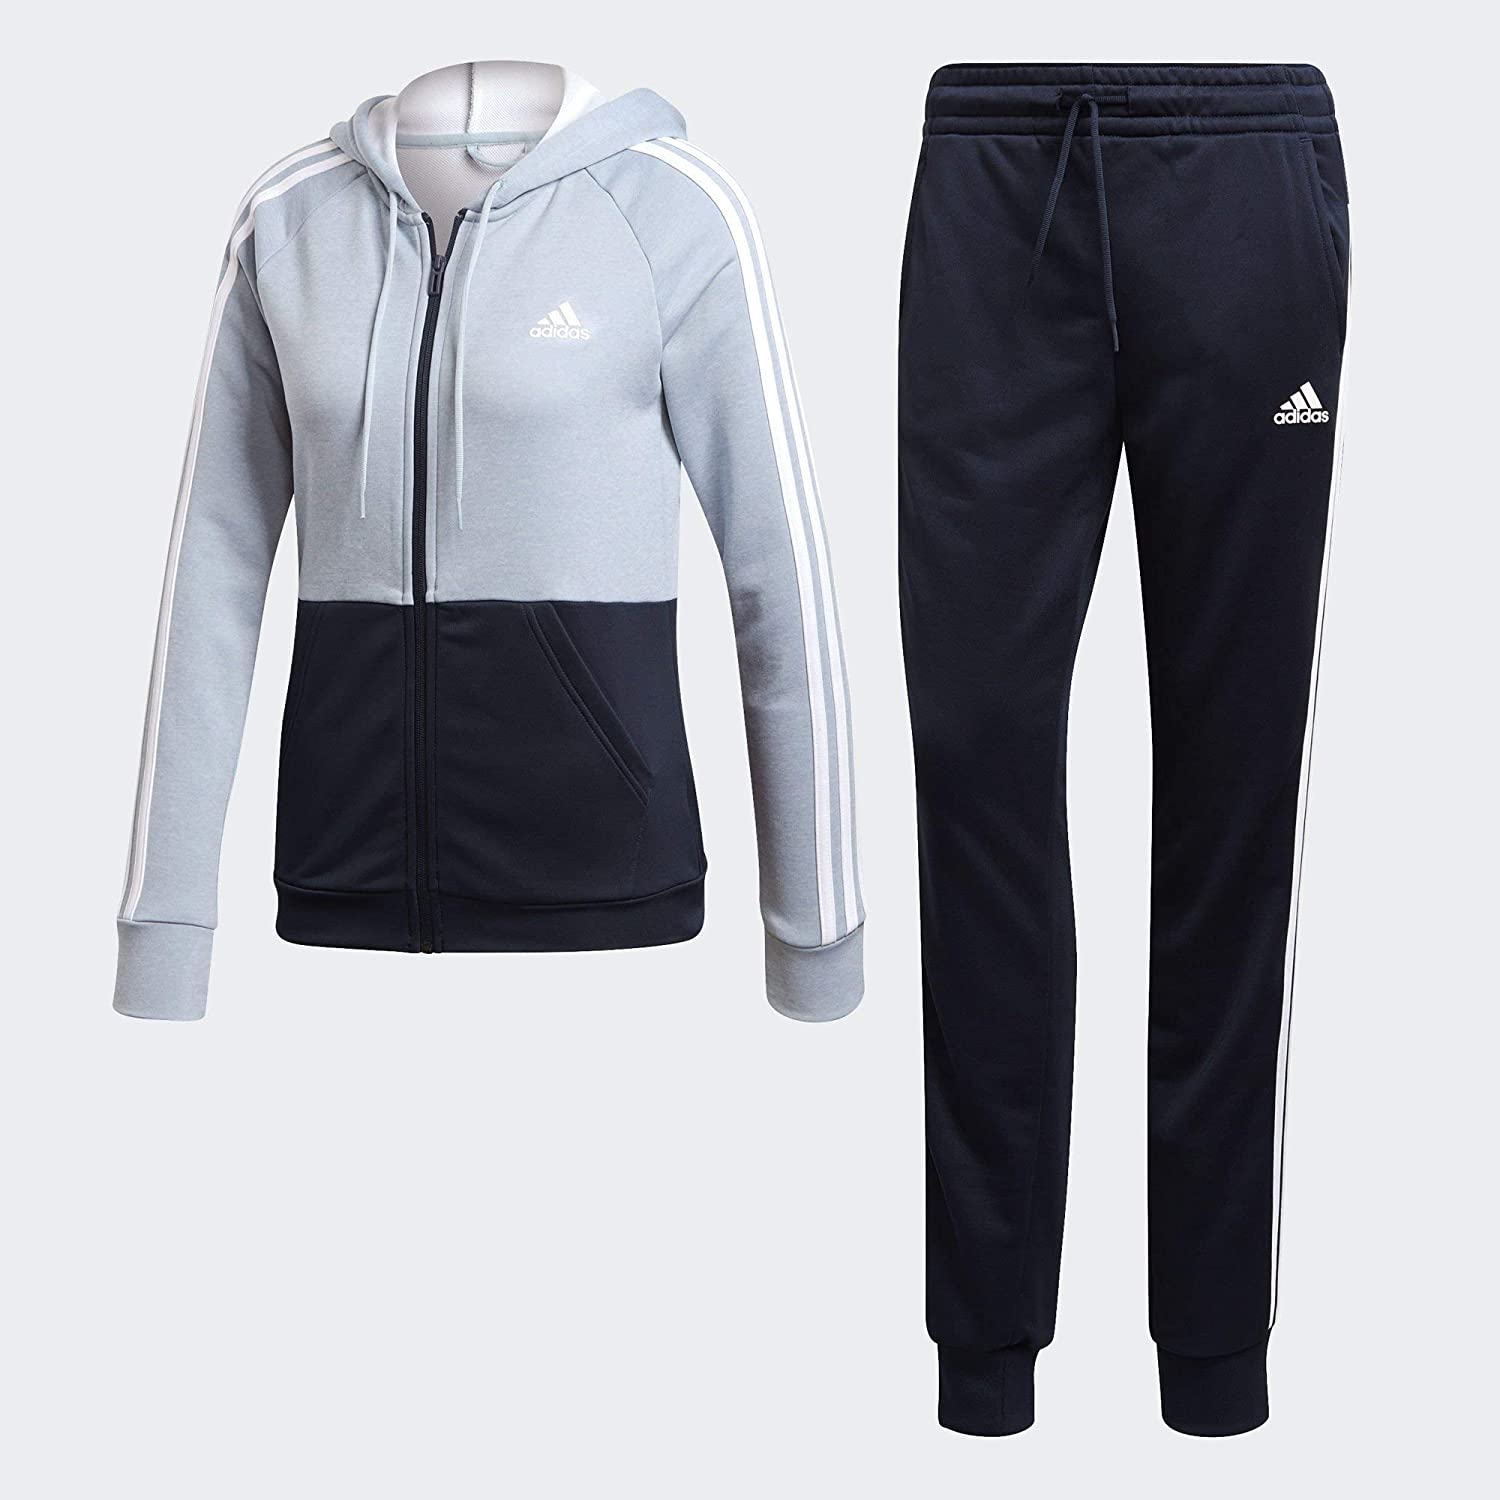 74e31e542163 adidas WTS Game Time Chándal, Mujer: Amazon.es: Ropa y accesorios